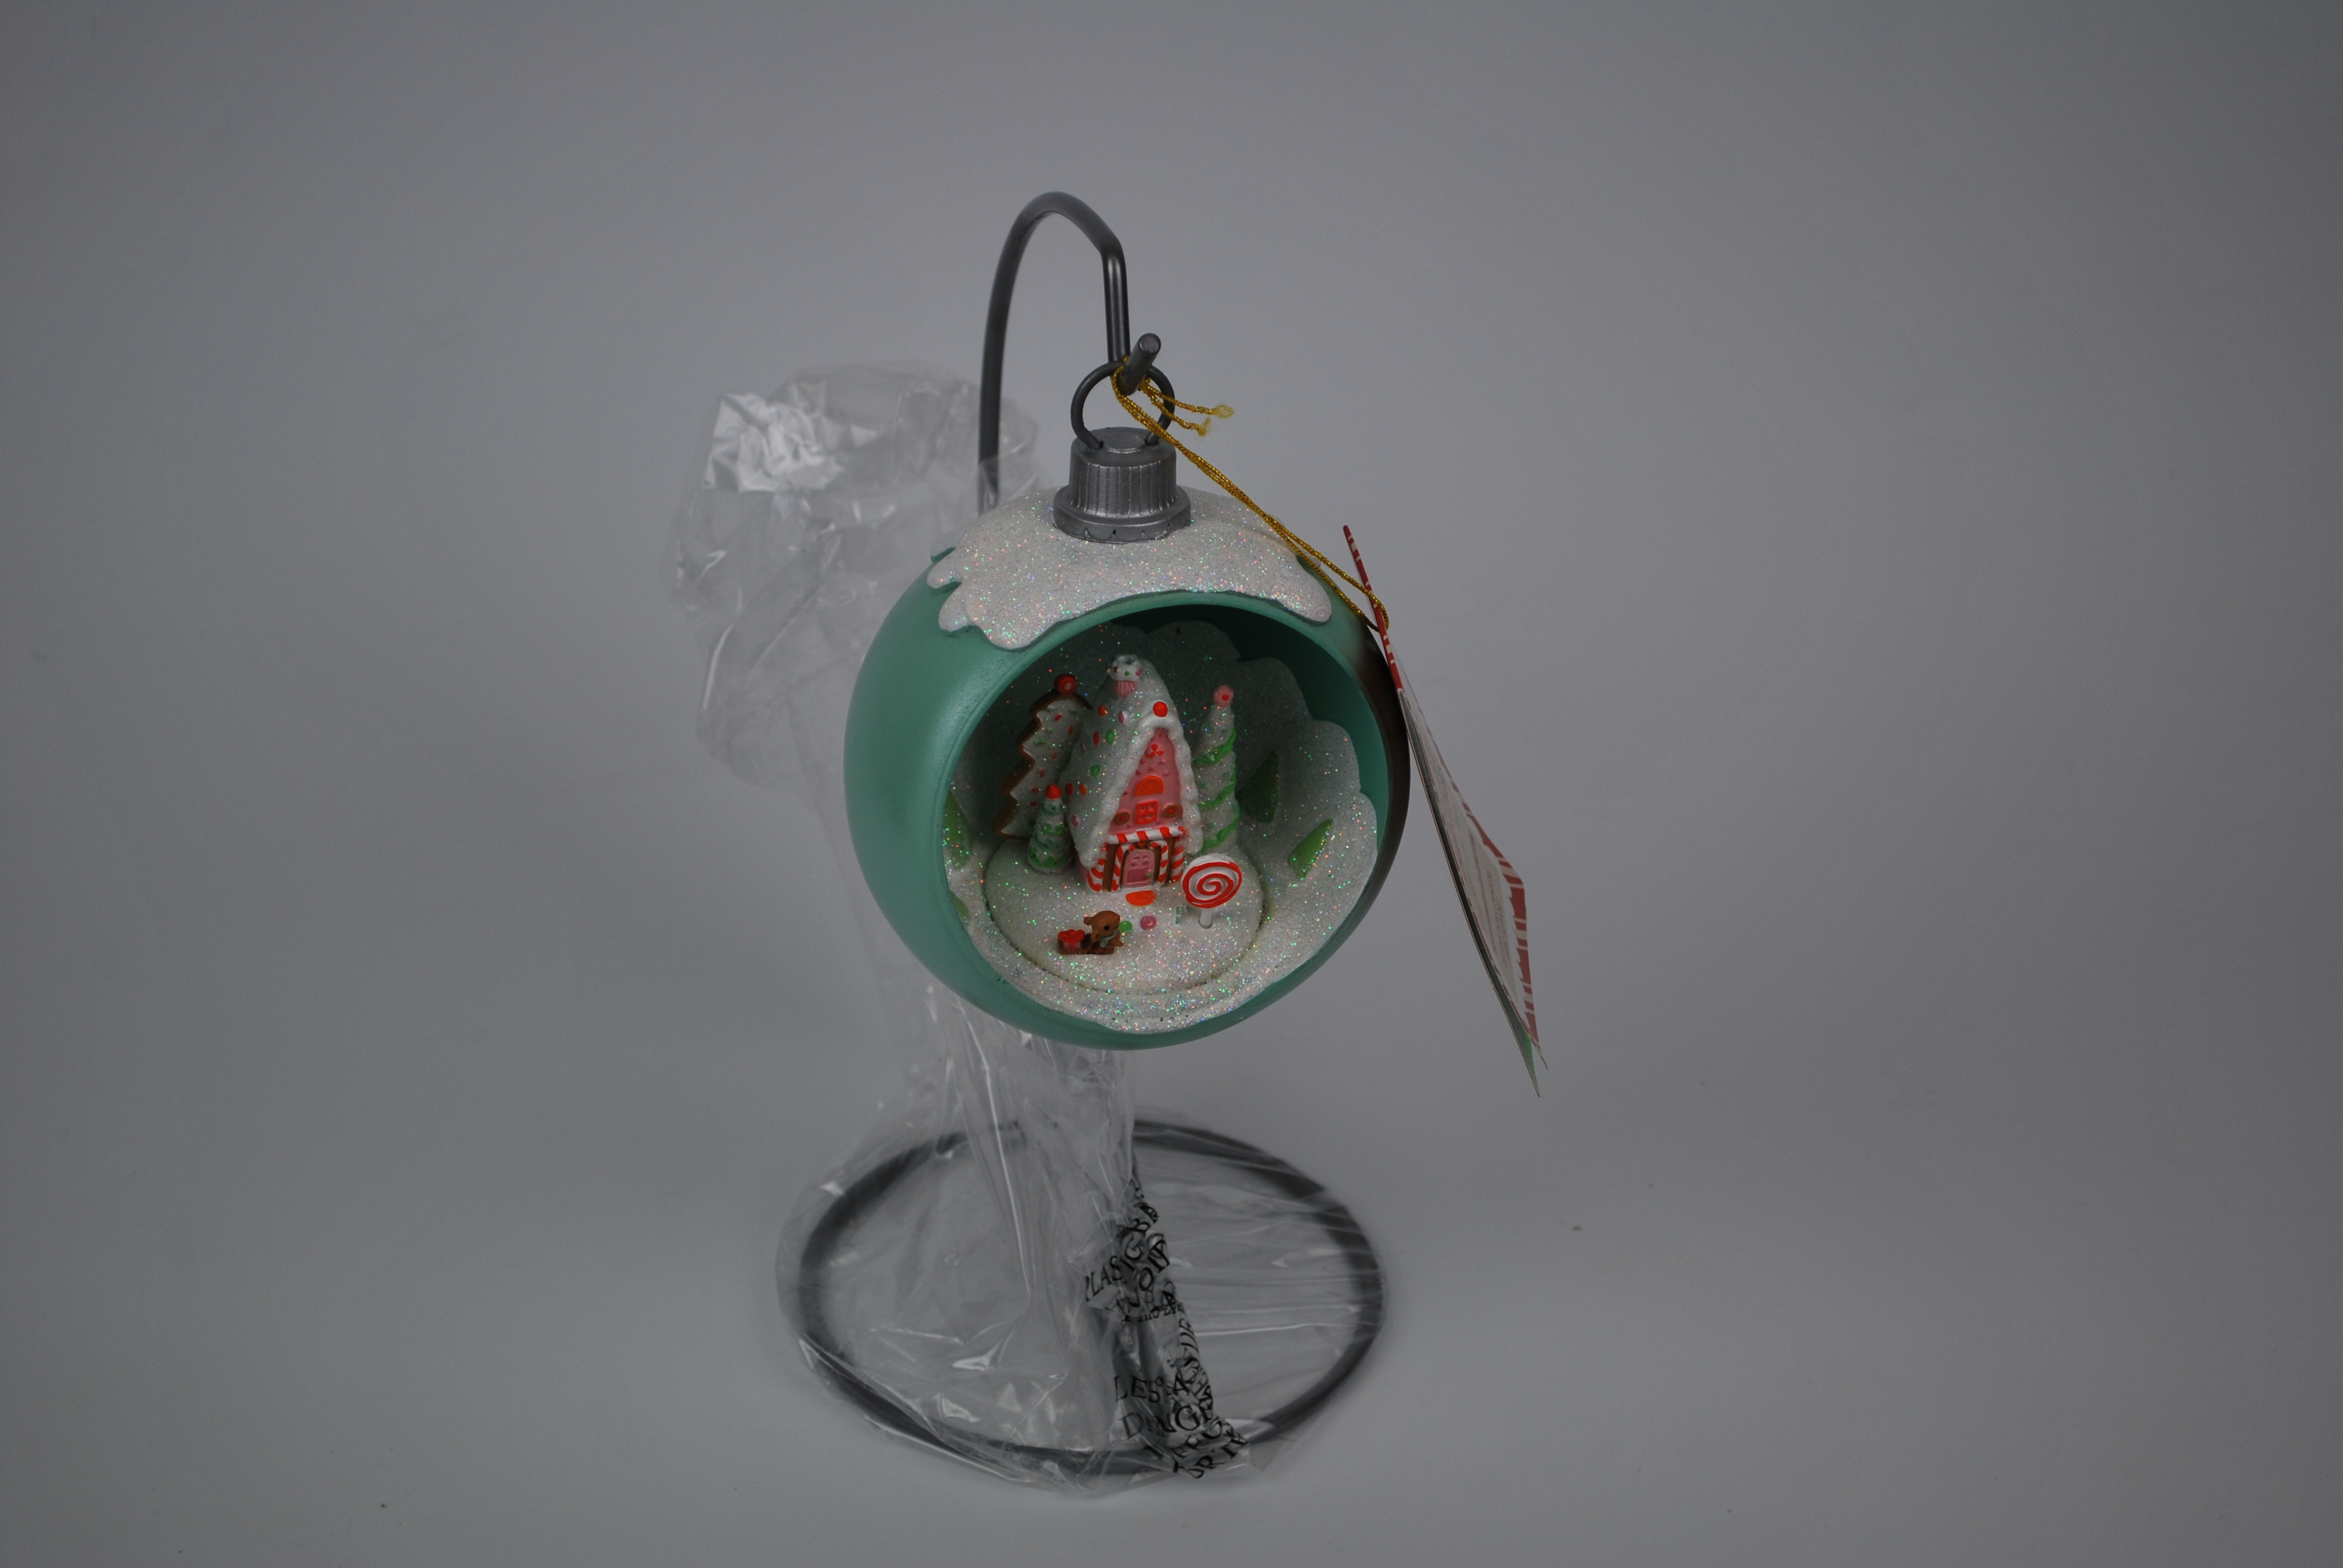 Hallmark Candy Coated Christmas Miniature World Ornament on Stand at Sears.com